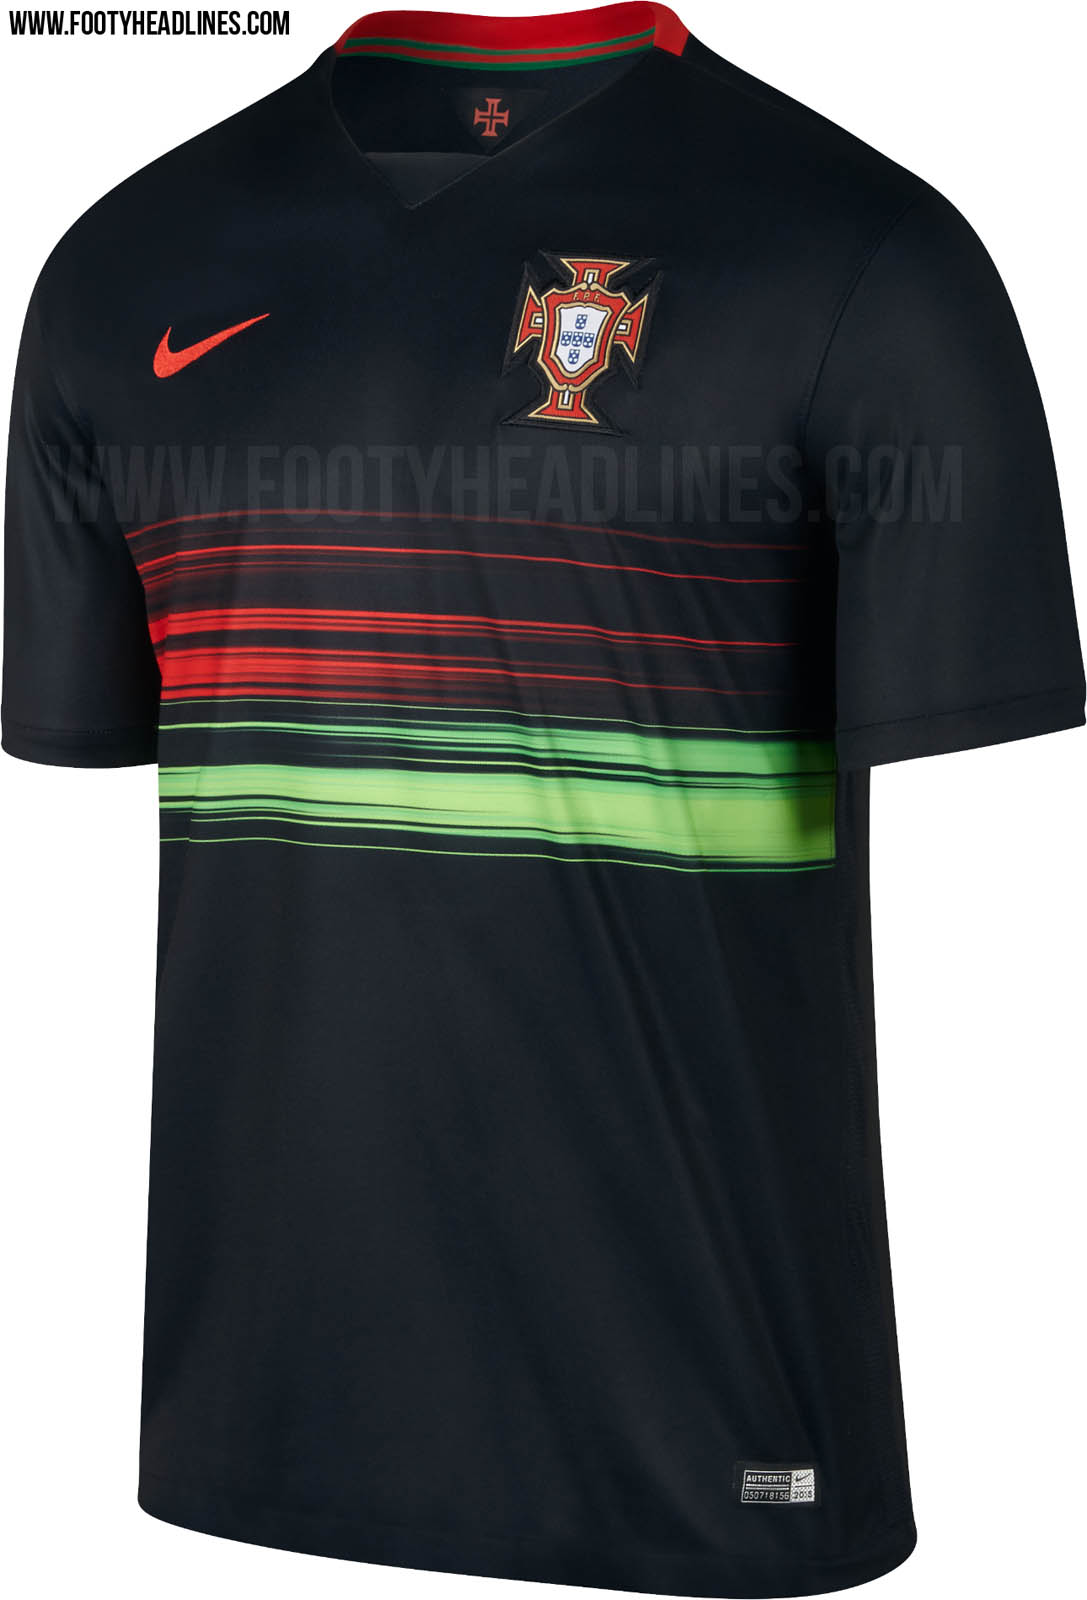 portugal jersey 2016